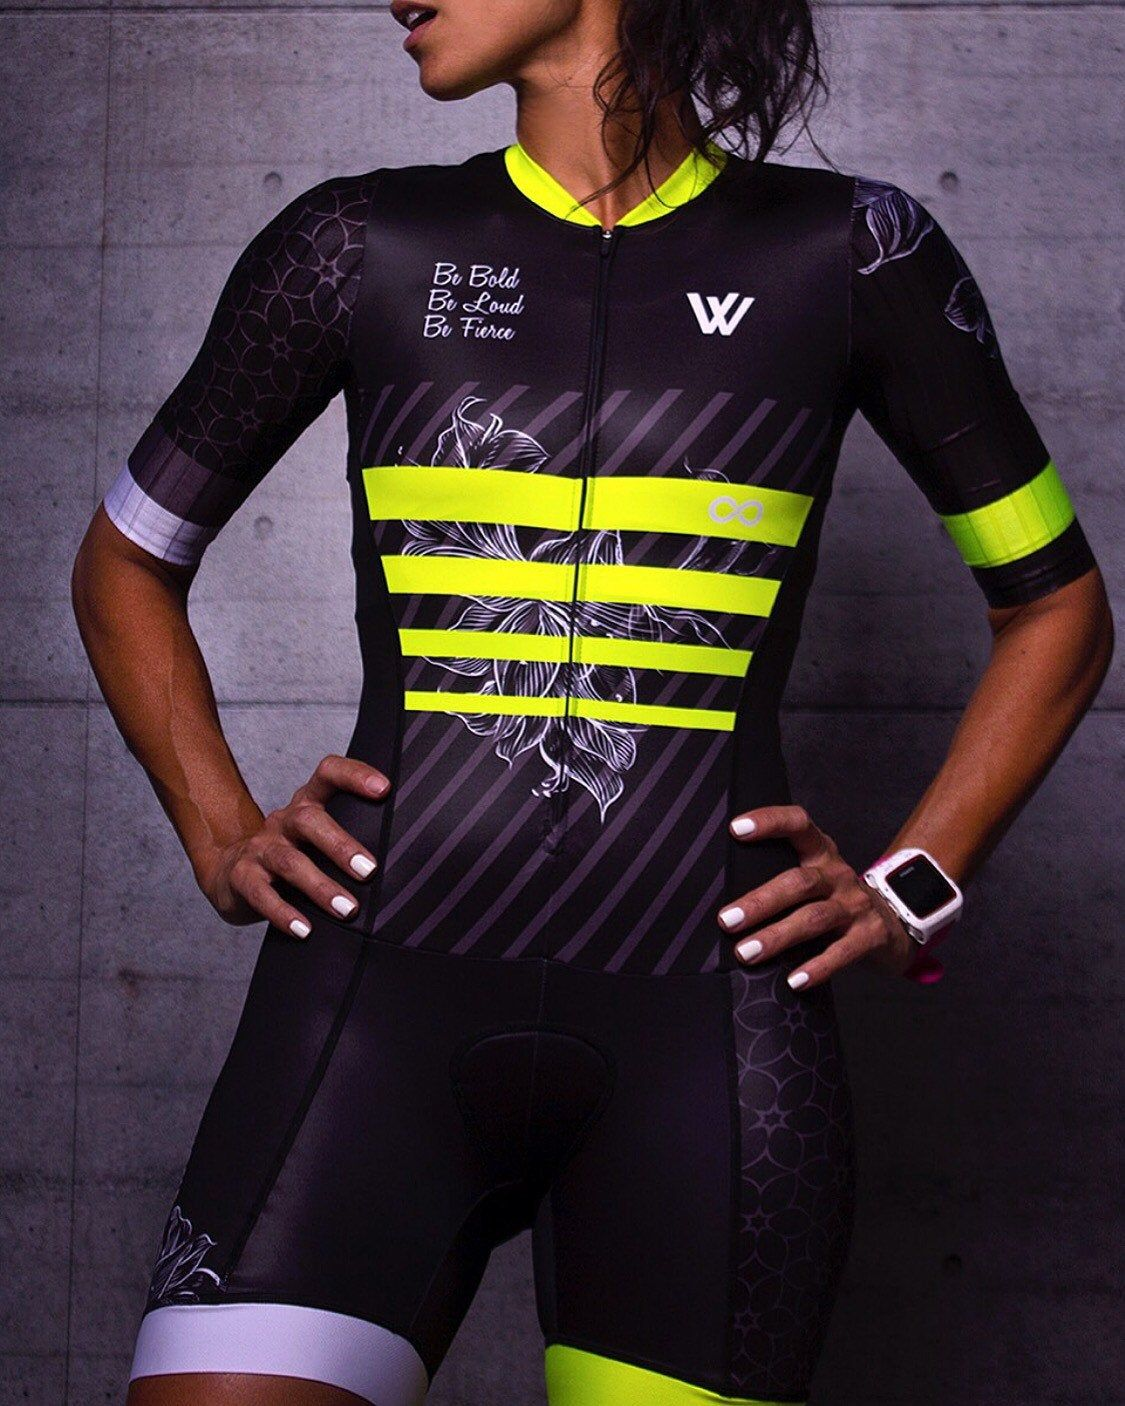 Download Trisuit Kit Cycling Kit Cycling Outfit Cycling Jersey Design Womens Cycling Clothes